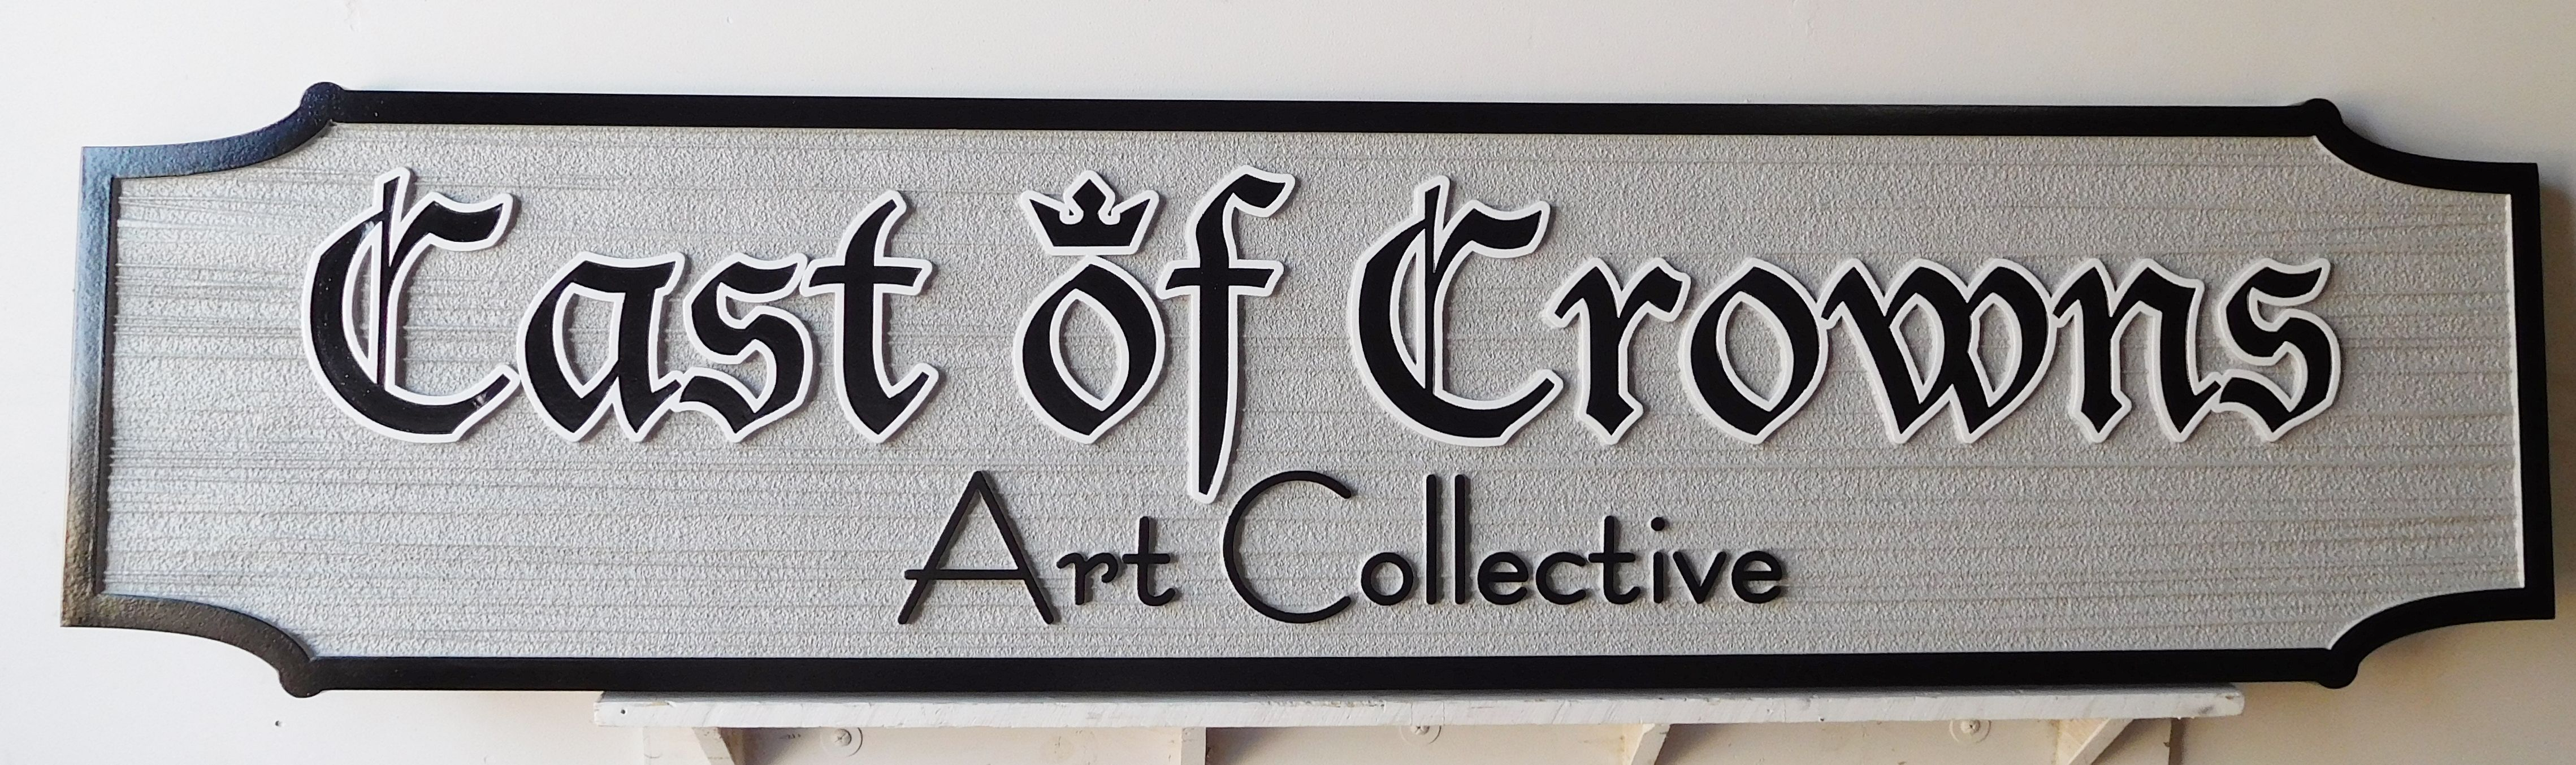 """SA28424 -  Carved and Sandblasted HDU Sign for the """"Cast of Crowns Art Collective"""""""